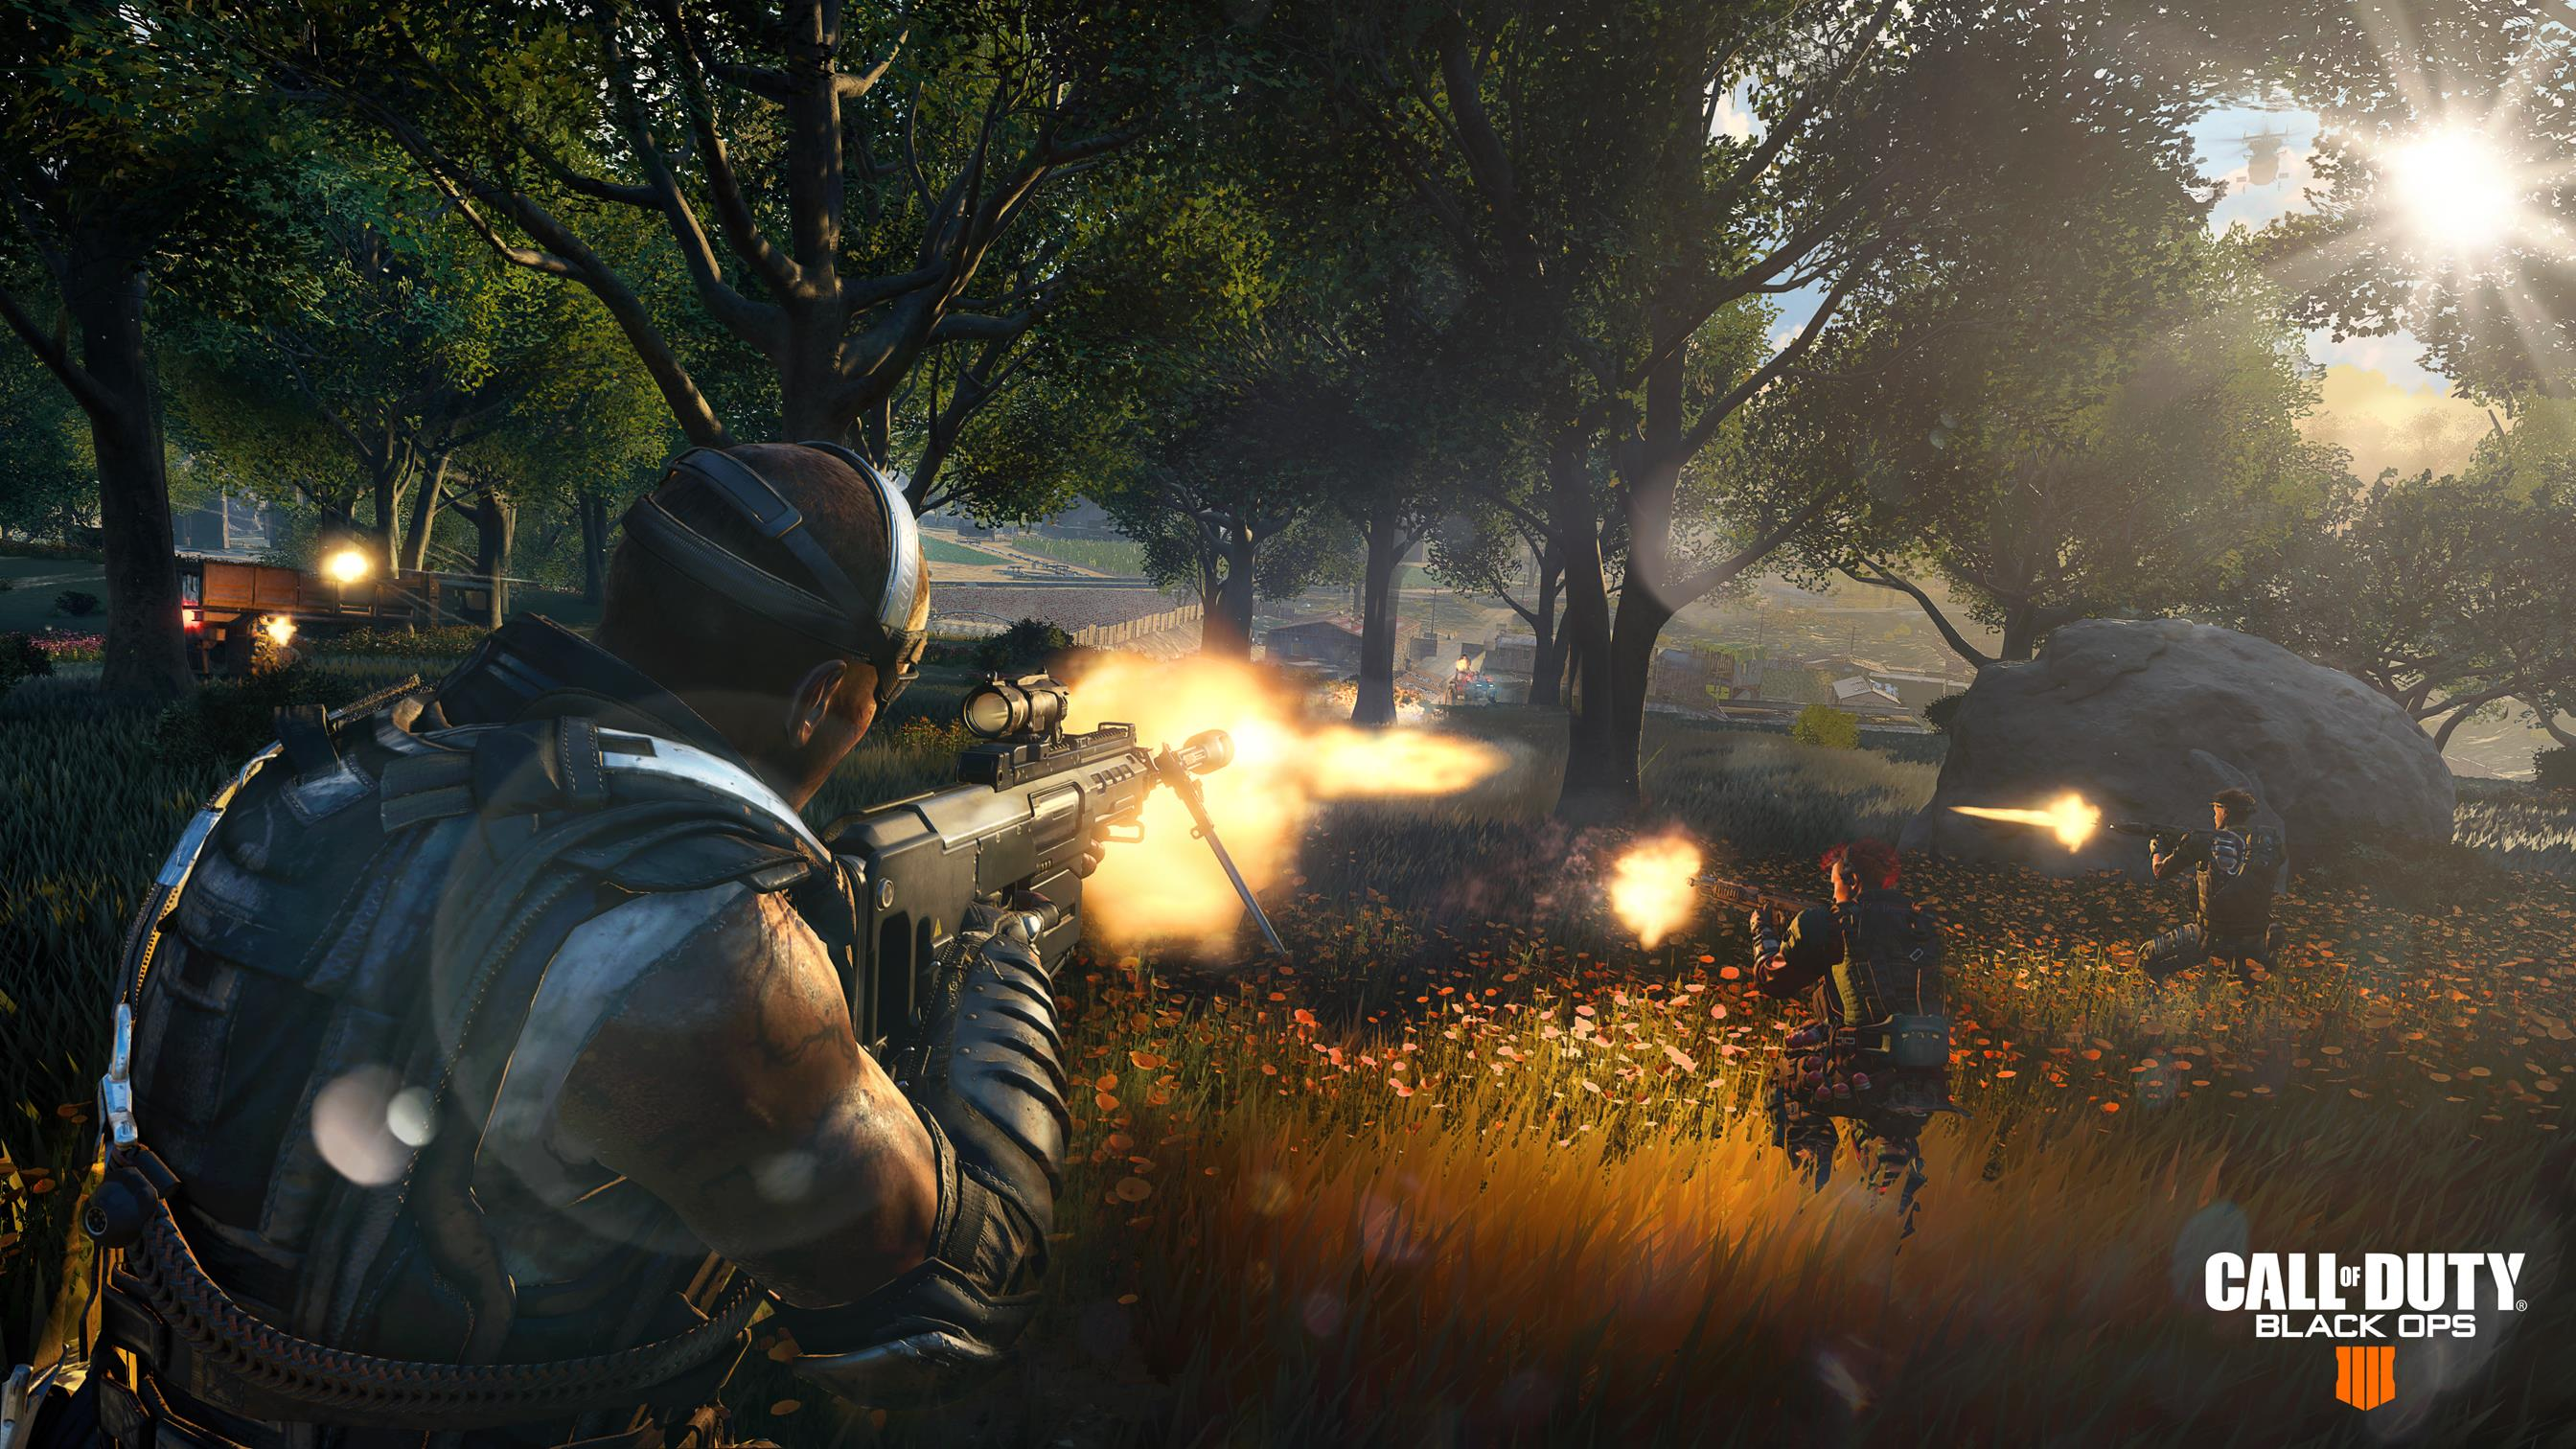 Call of Duty: Black Ops 4 launch gameplay trailer released - Just Push Start